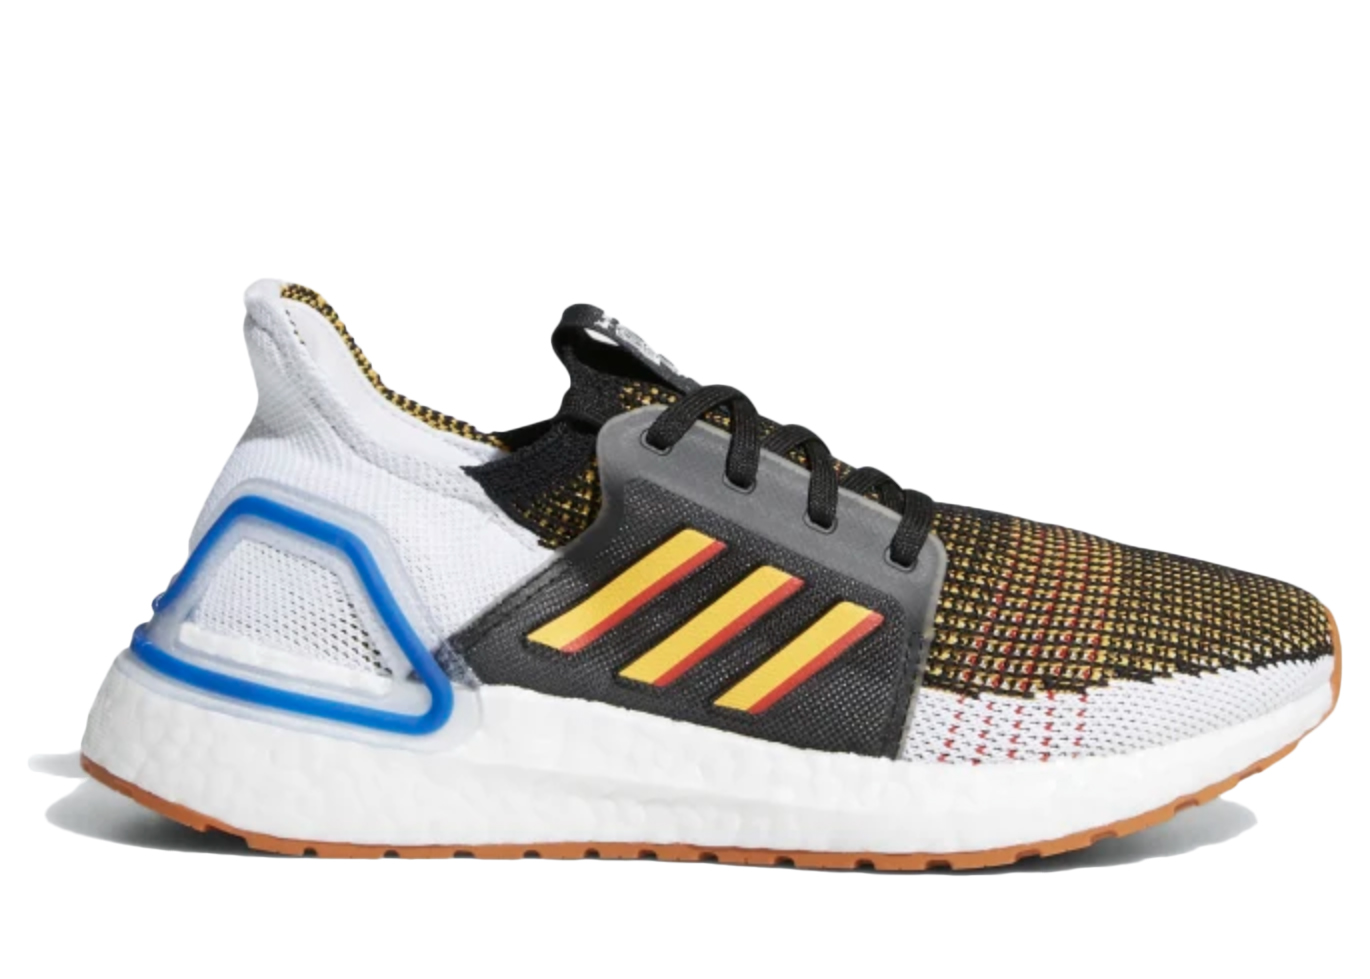 adidas Ultraboost 19 Active Gold Scarlet (GS)